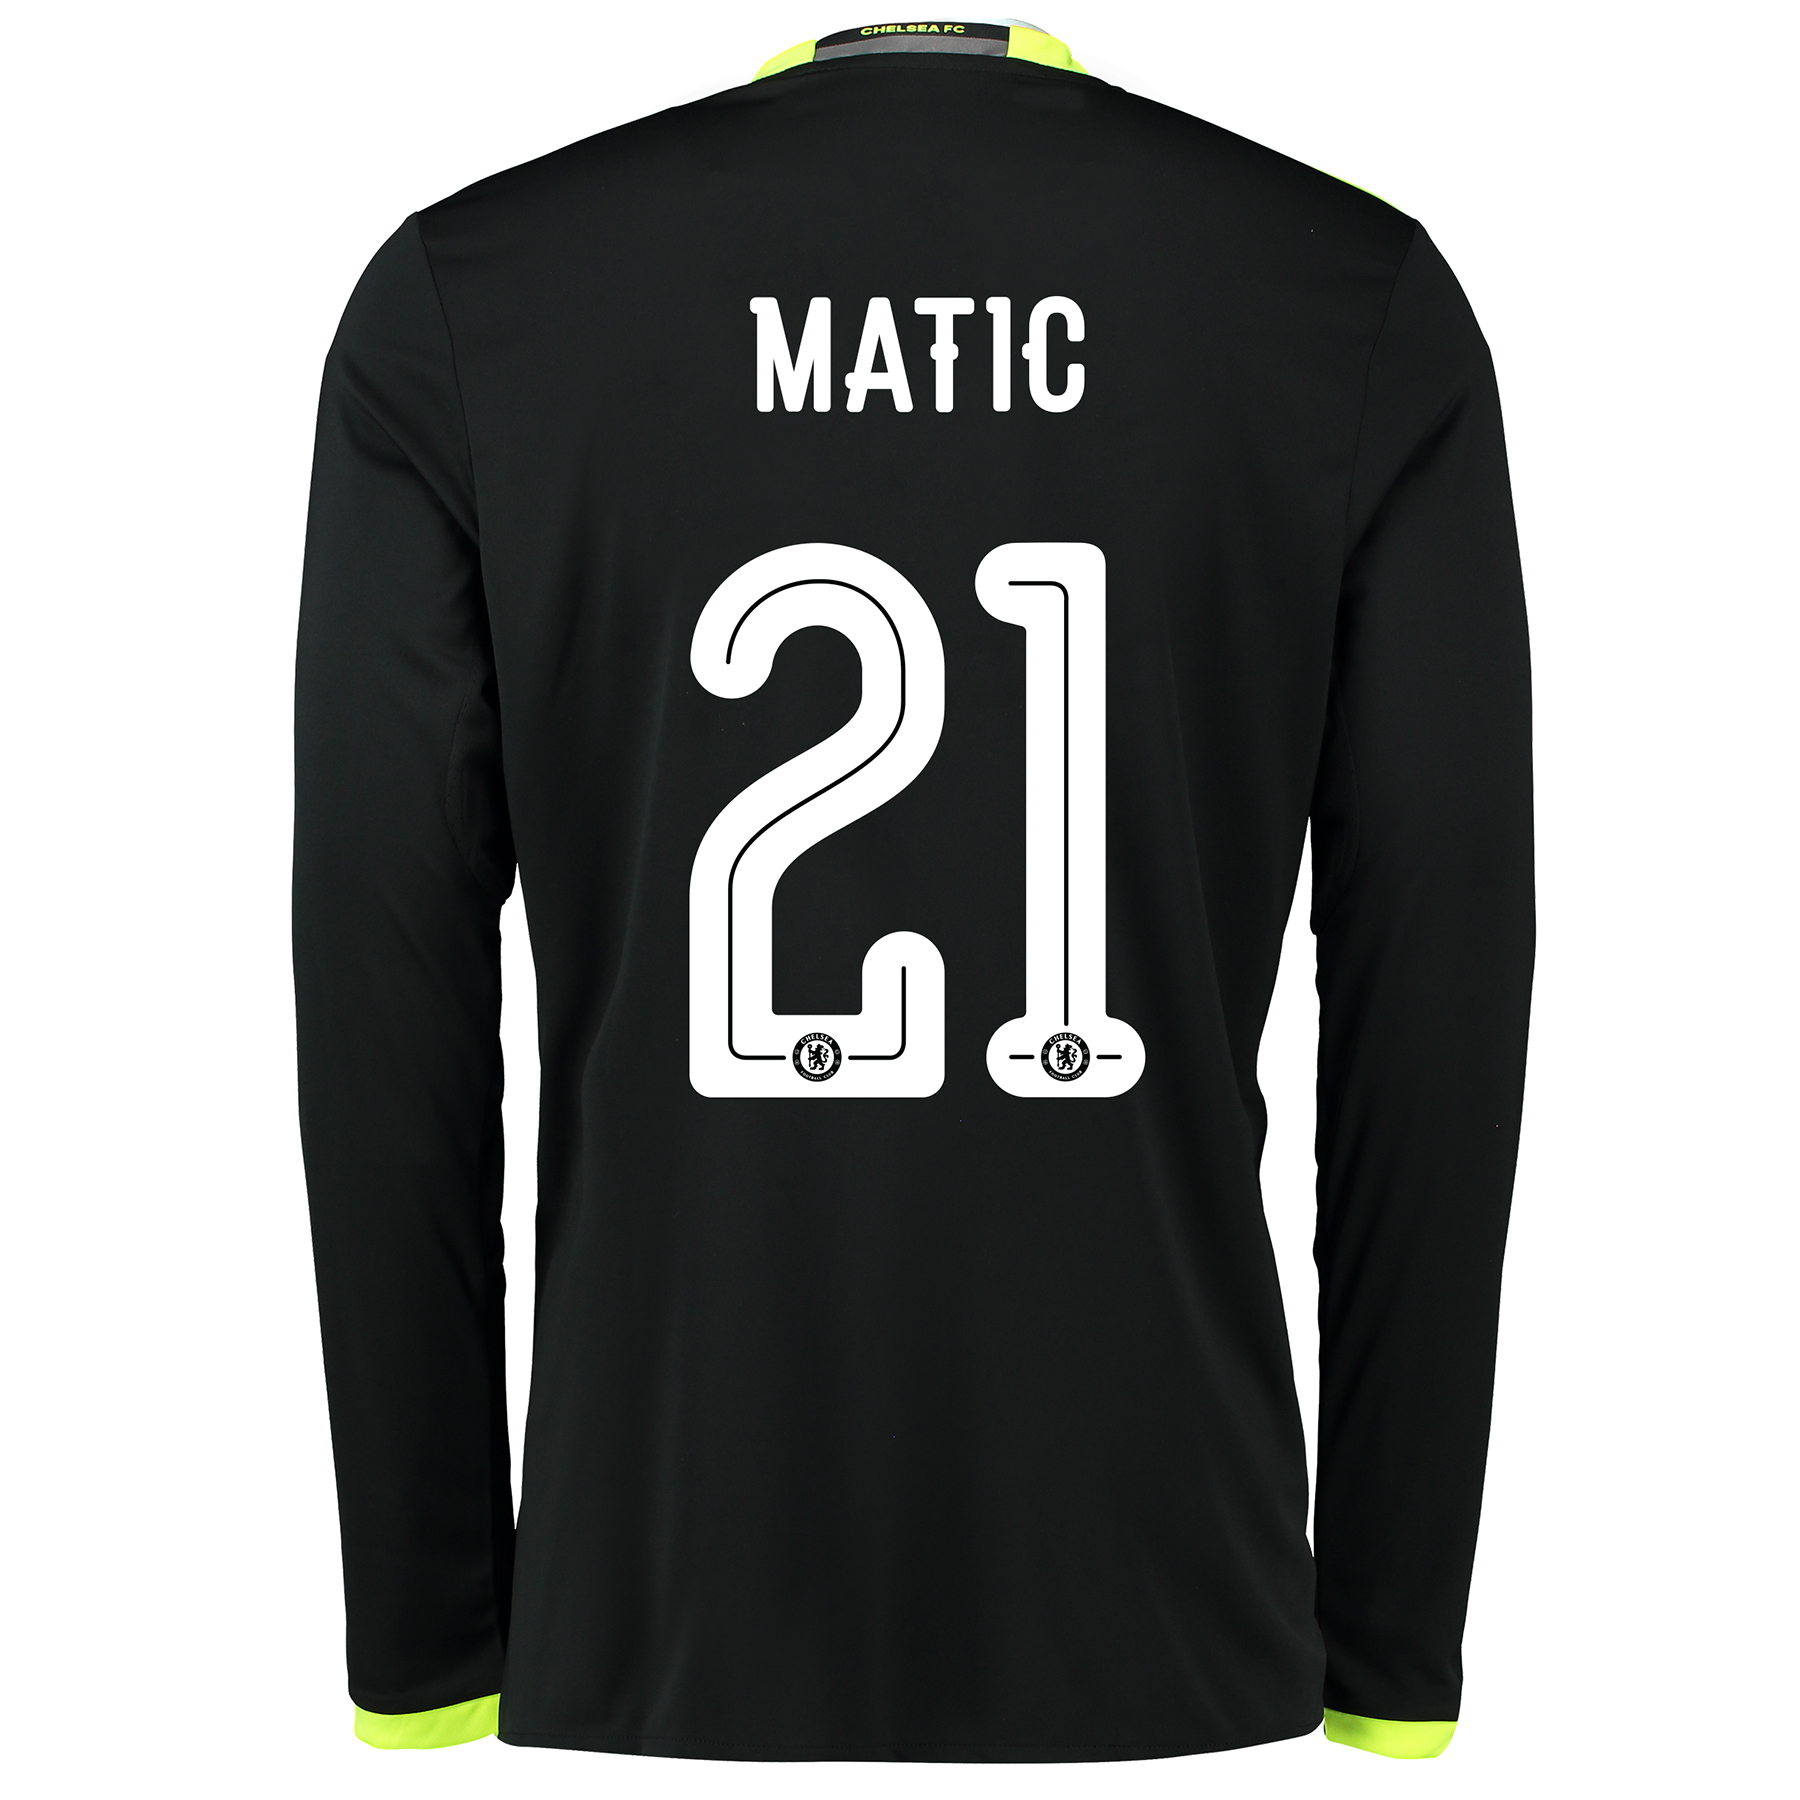 Chelsea Linear Away Shirt 16-17 - Kids - Long Sleeve with Matic 21 pri